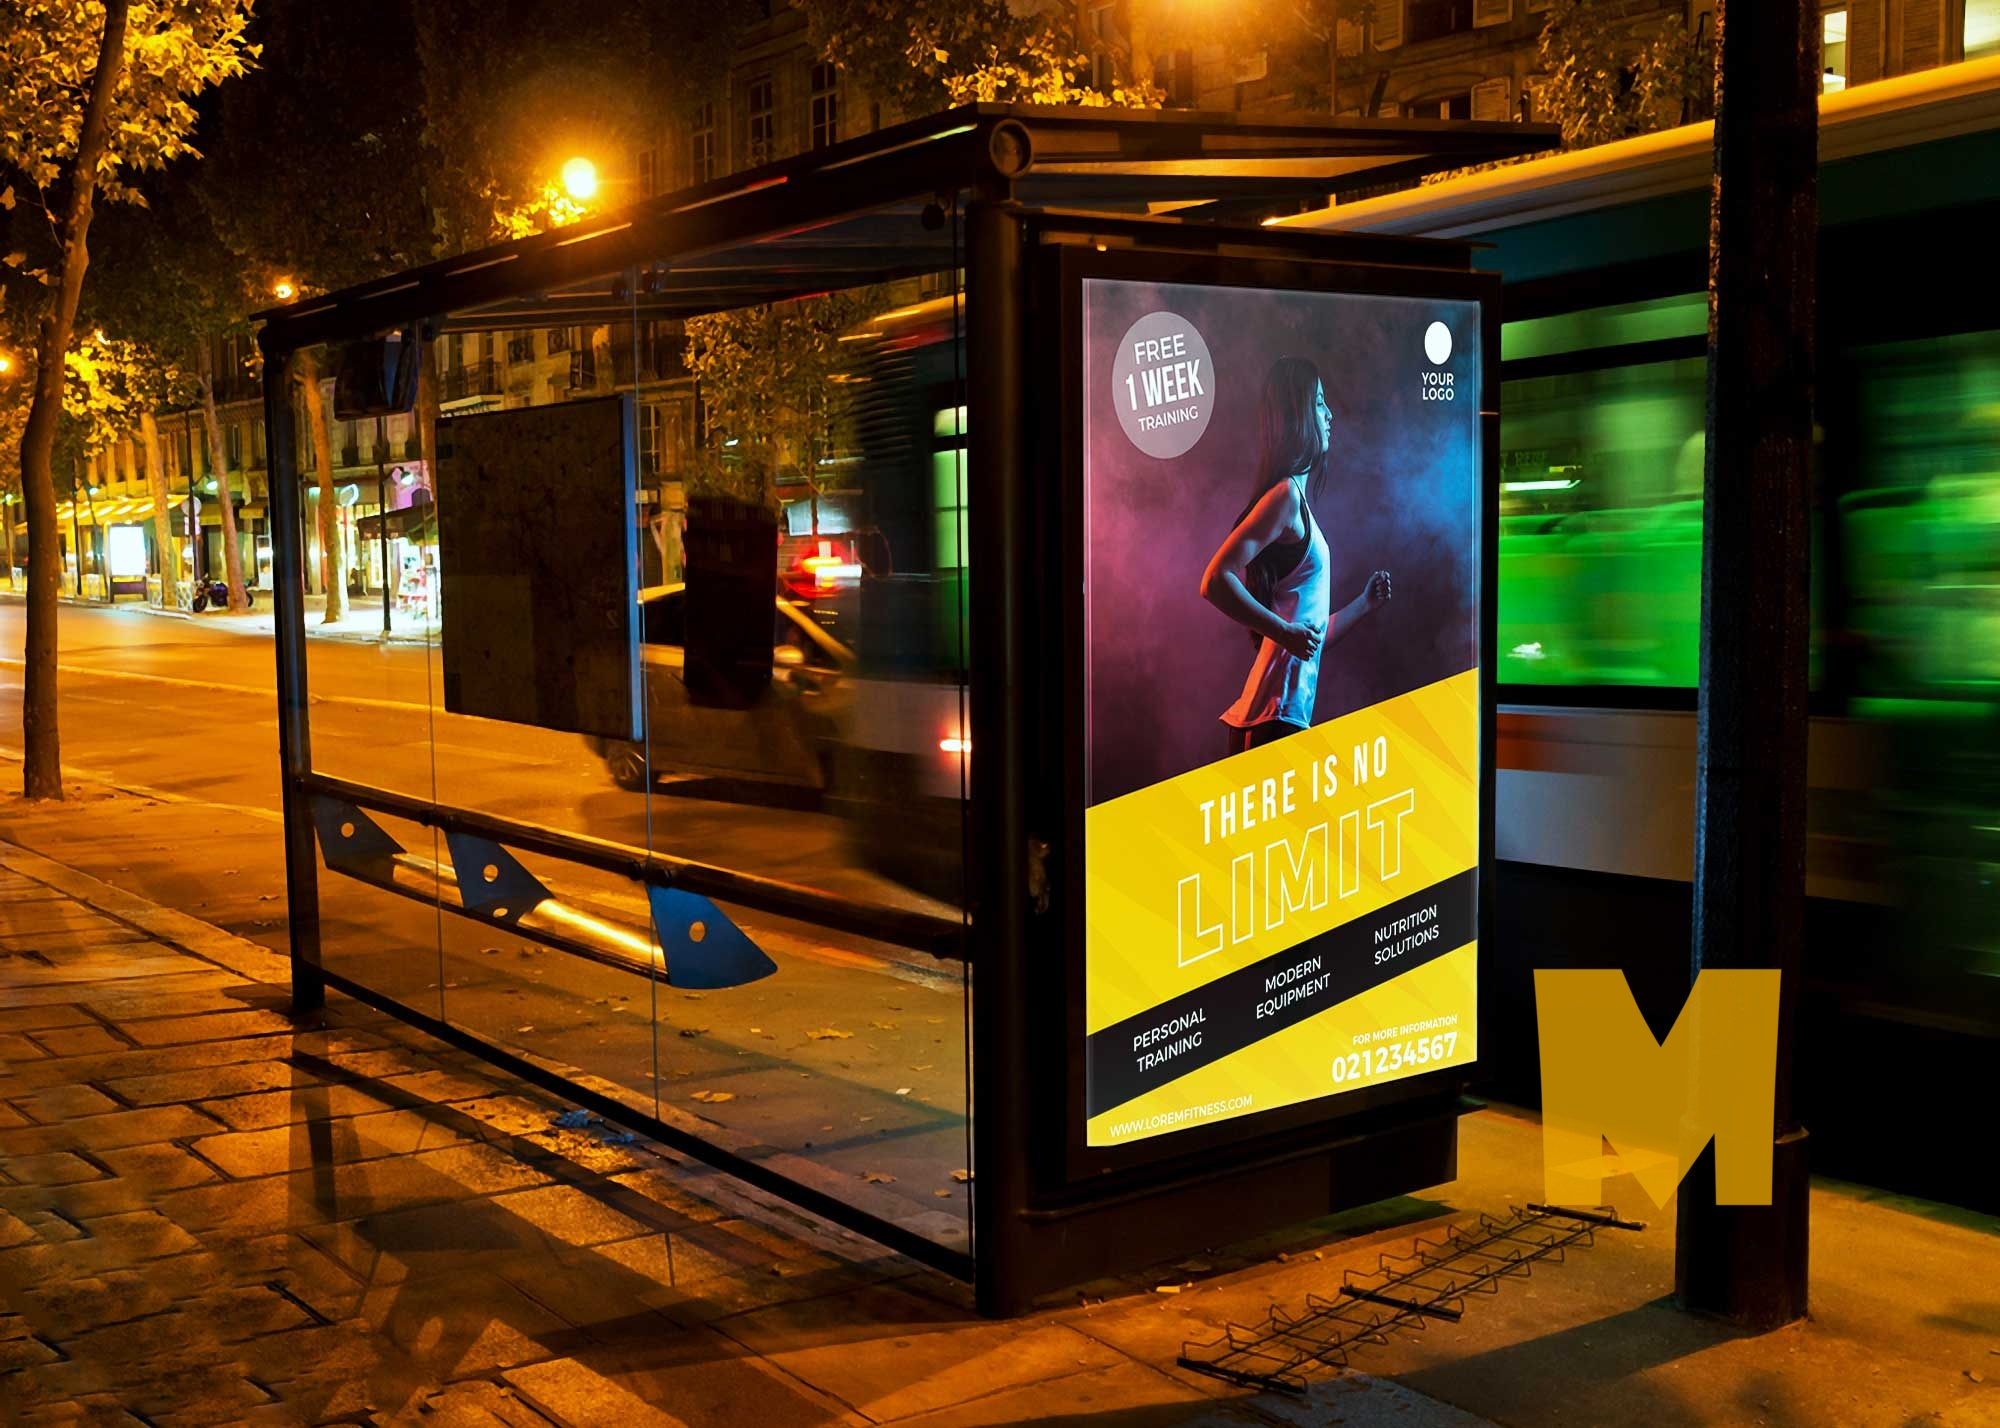 Night Bus Shelter Billboard Mockup